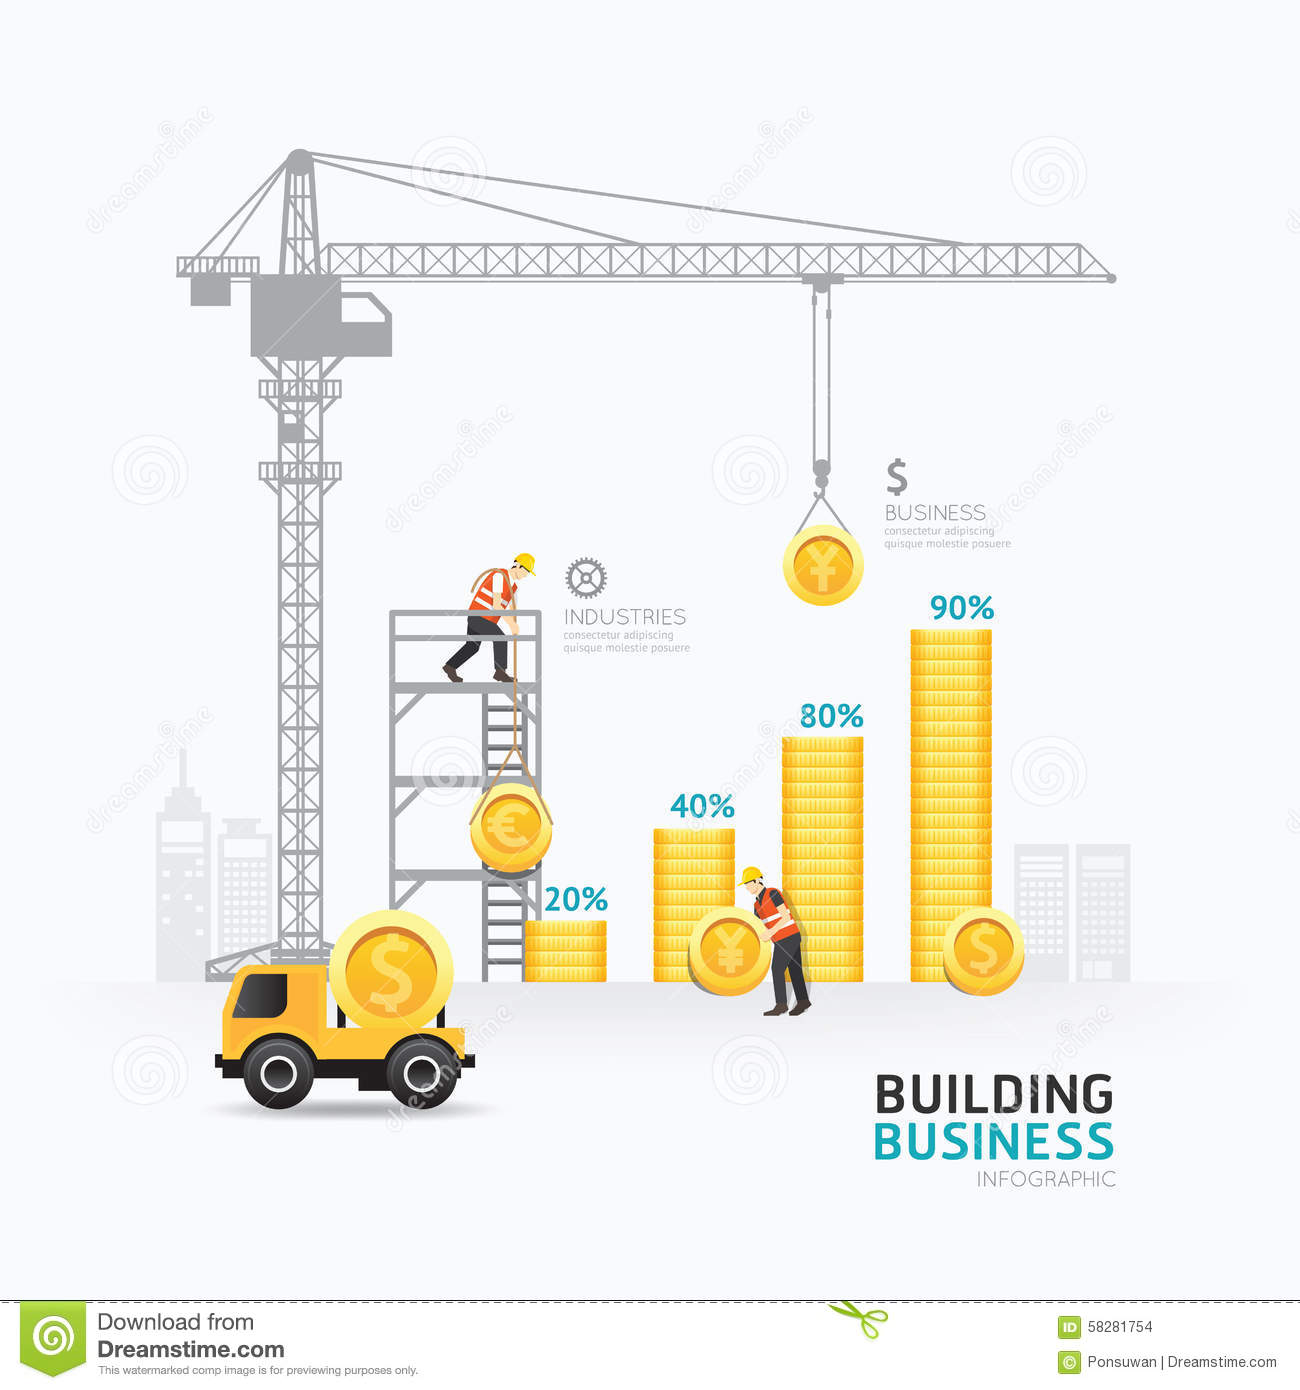 Infographic business money graph template design stock vector image 58281754 - Build house plans online free concept ...